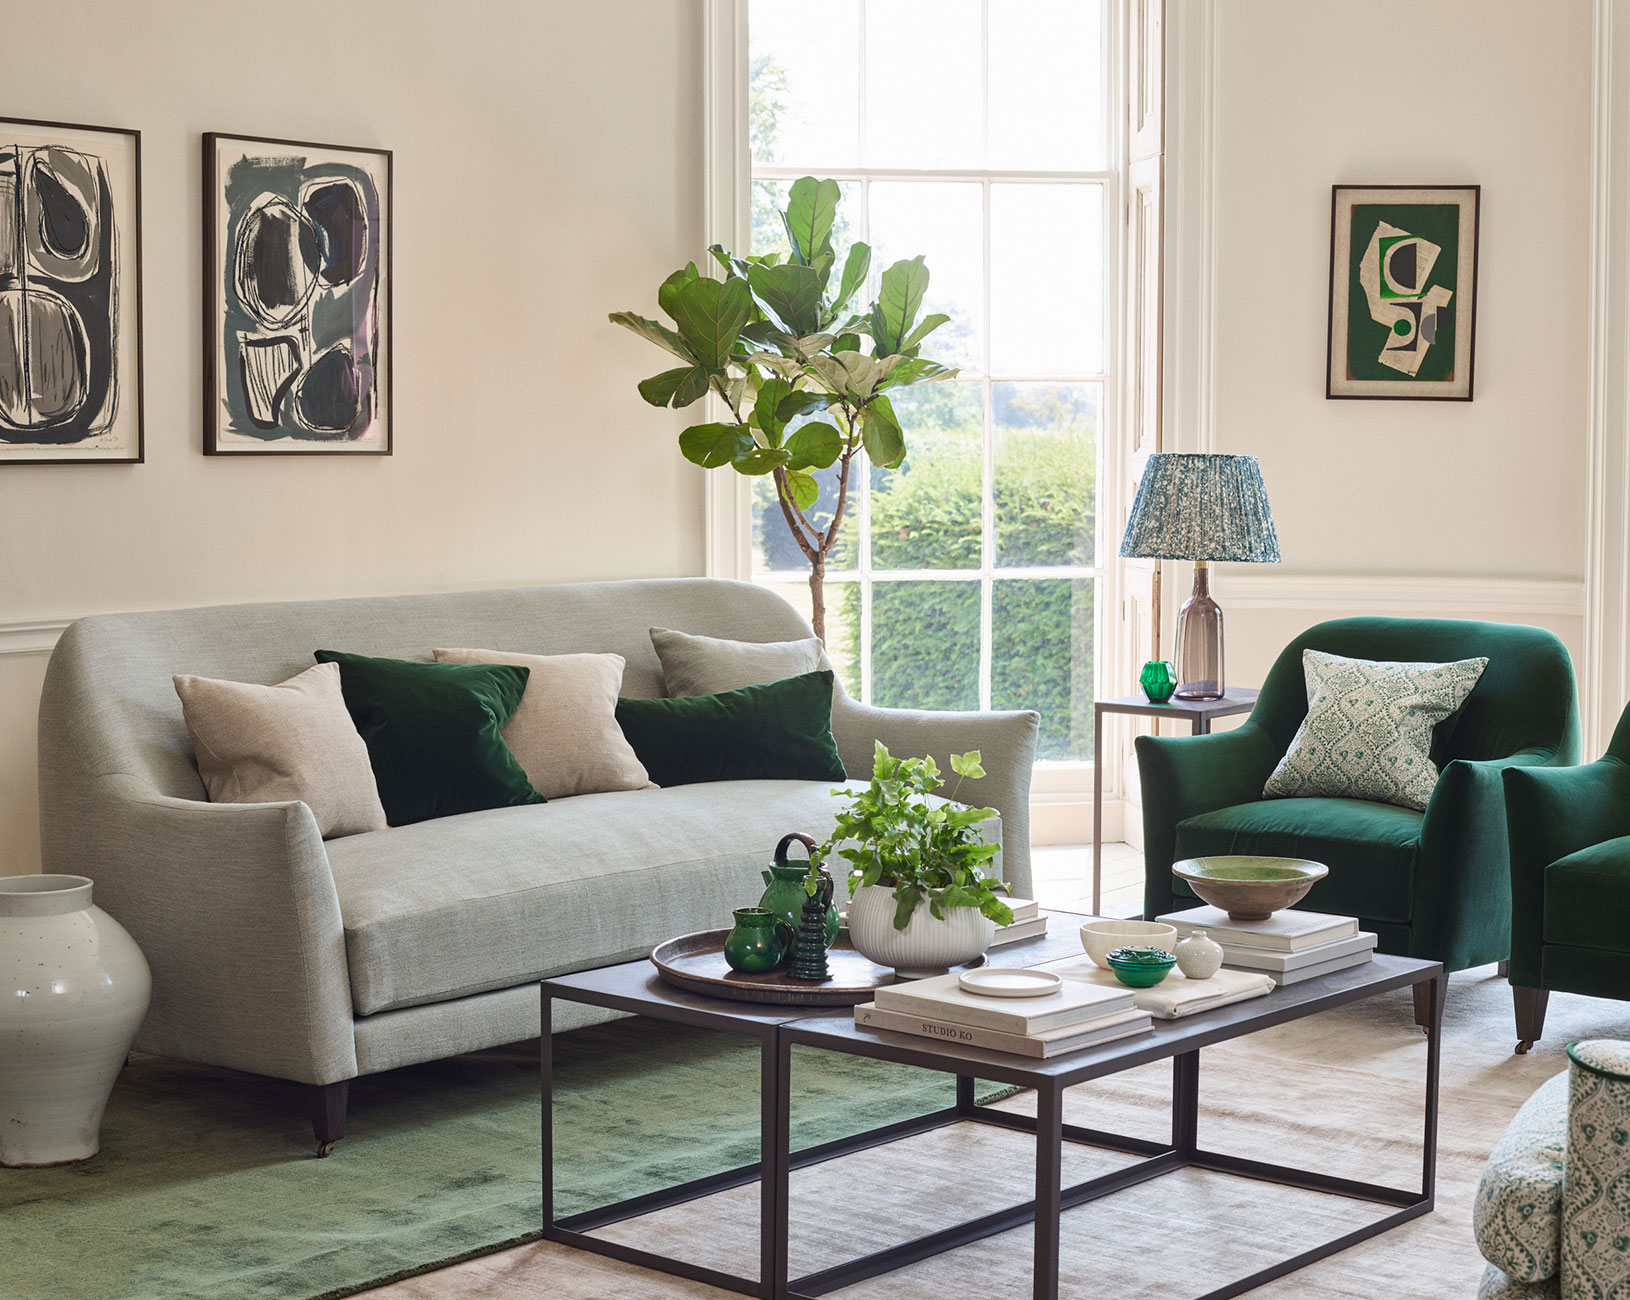 bloomsbury sofa and armchair